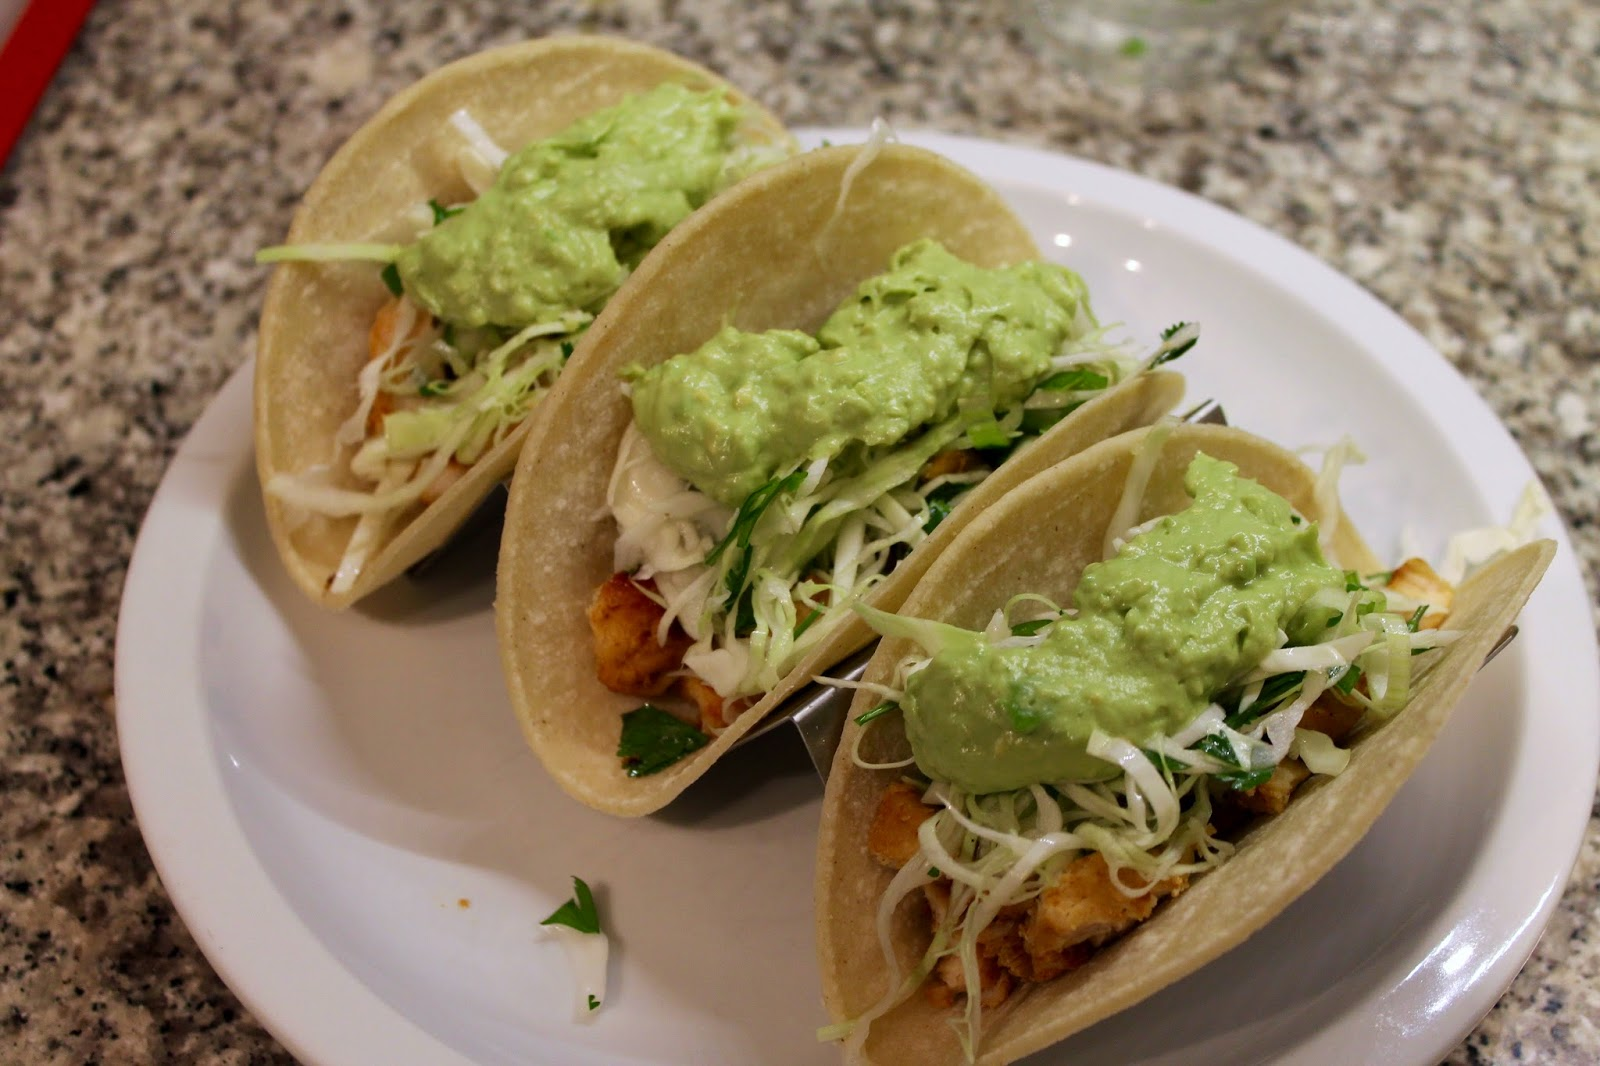 ... In / Dine Out: Ancho Chile Chicken and Slaw Tacos (Silent Interlude